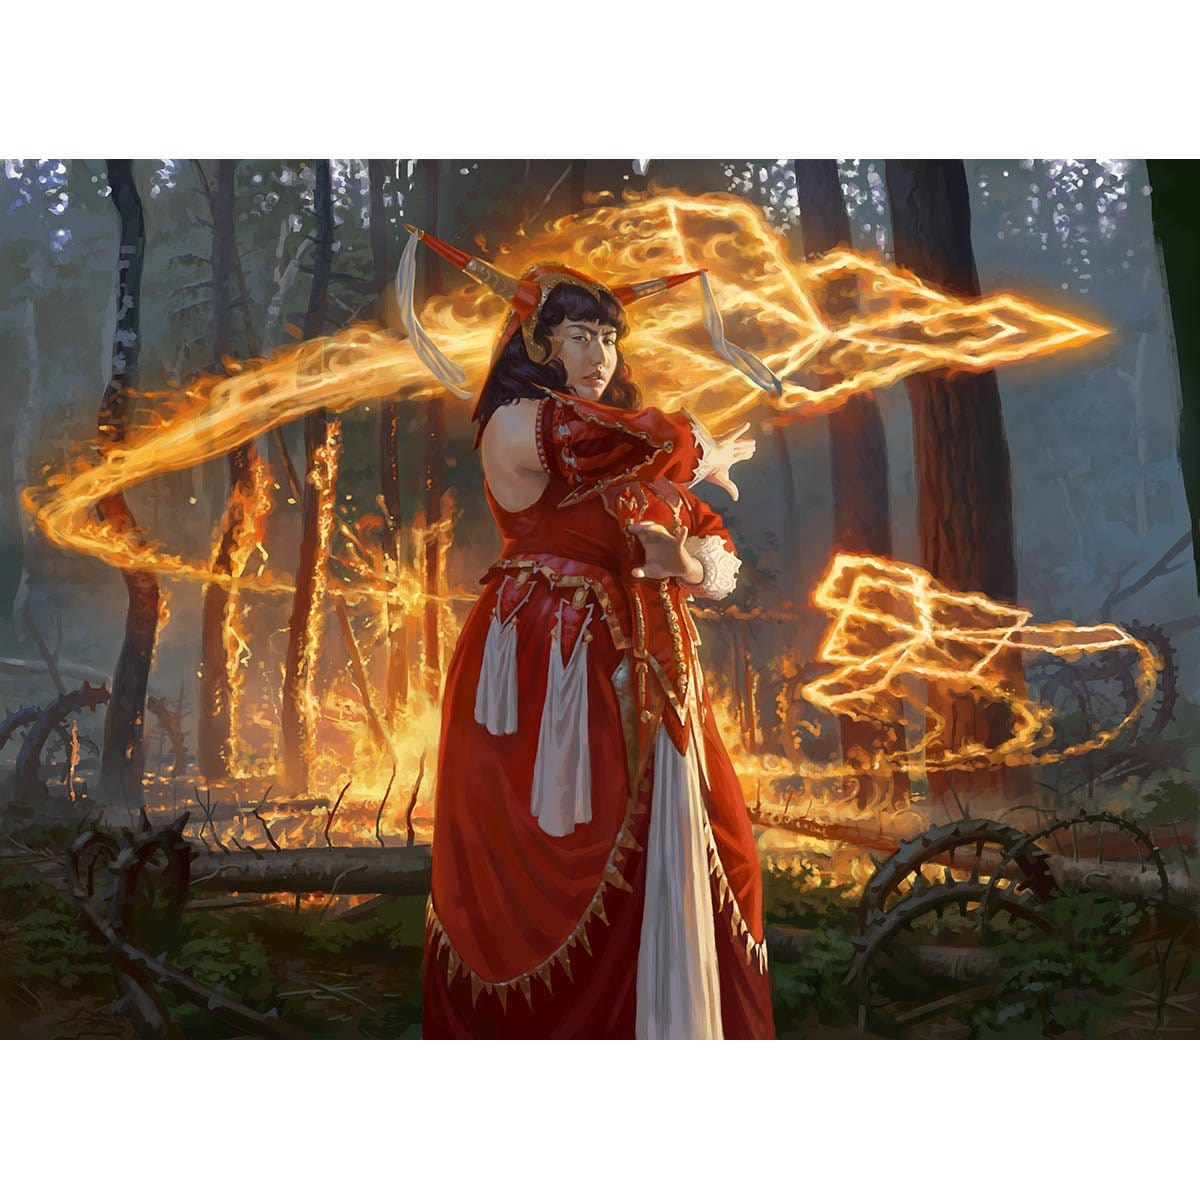 Irencrag Pyromancer Print - Print - Original Magic Art - Accessories for Magic the Gathering and other card games